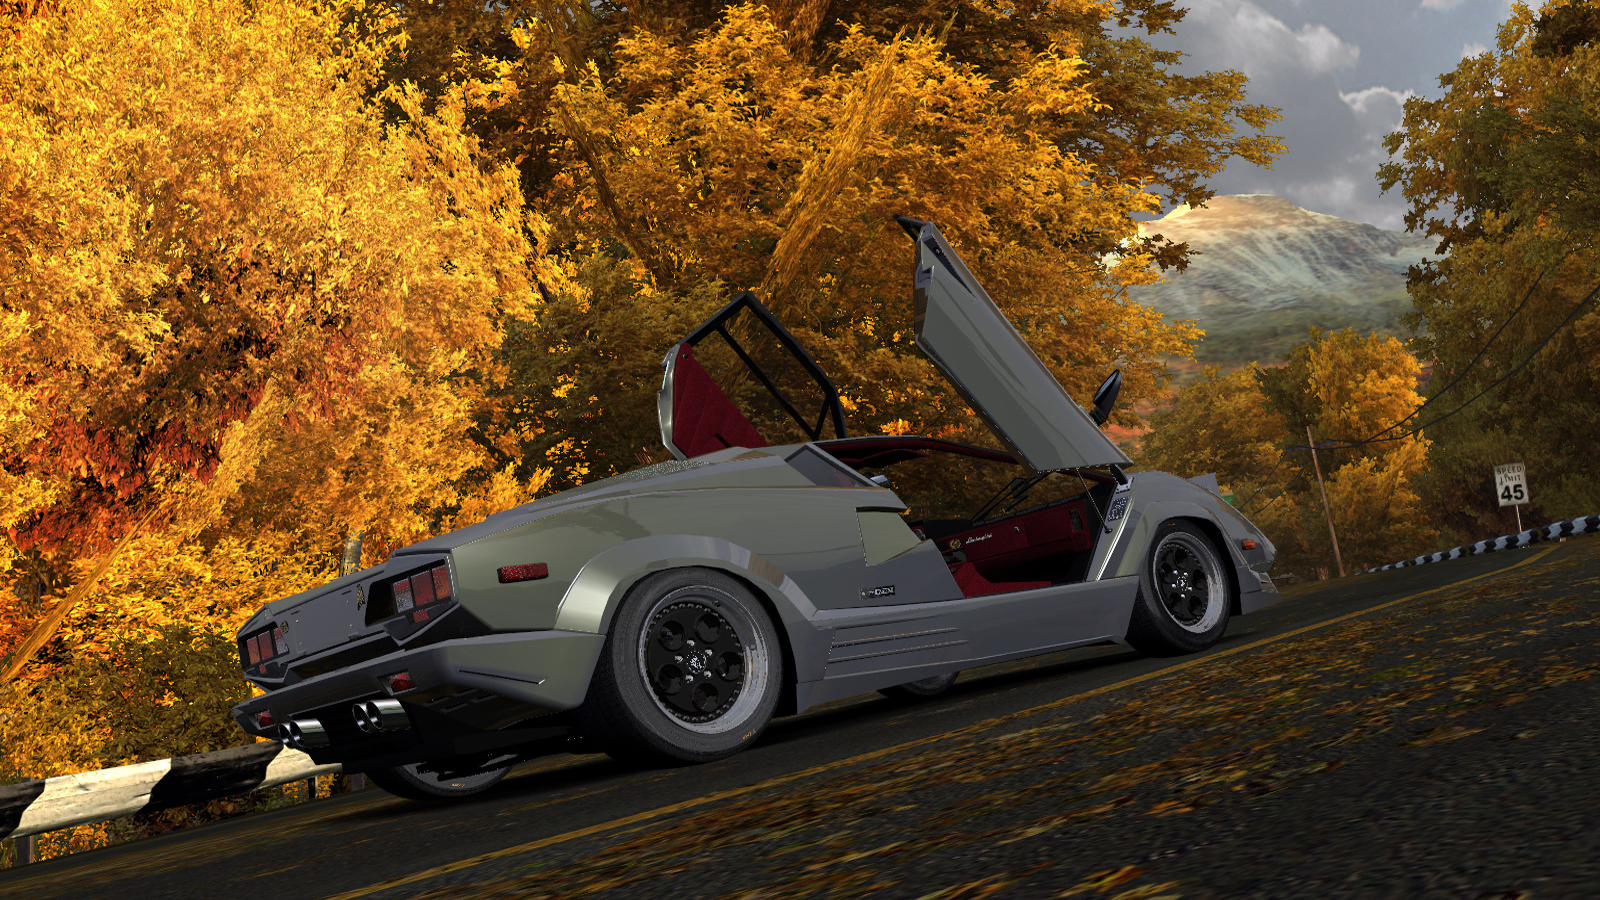 Lamborghini Countach 25th Anniversary by Alex.Ka. - Need for Speed: Most Wanted (2005) Lamborghini Countach, Автомобиль